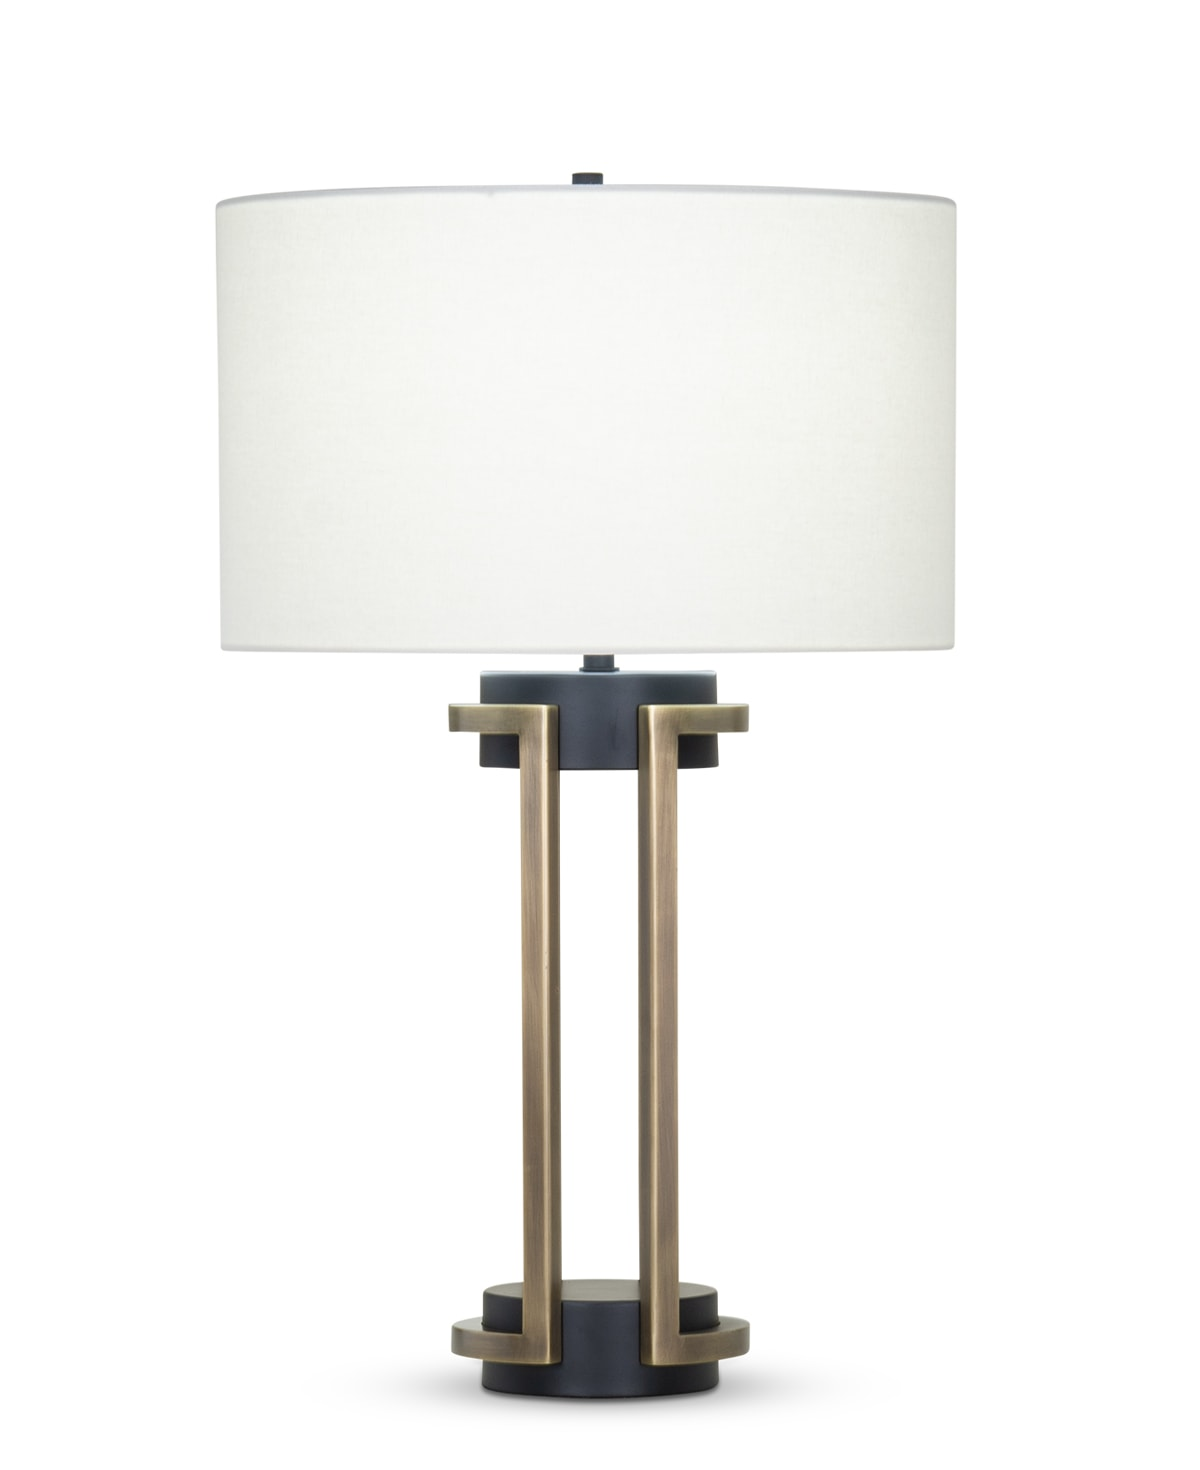 FlowDecor Carmel Table Lamp in metal with antique brass & black matte finishes and off-white linen drum shade (# 4410)